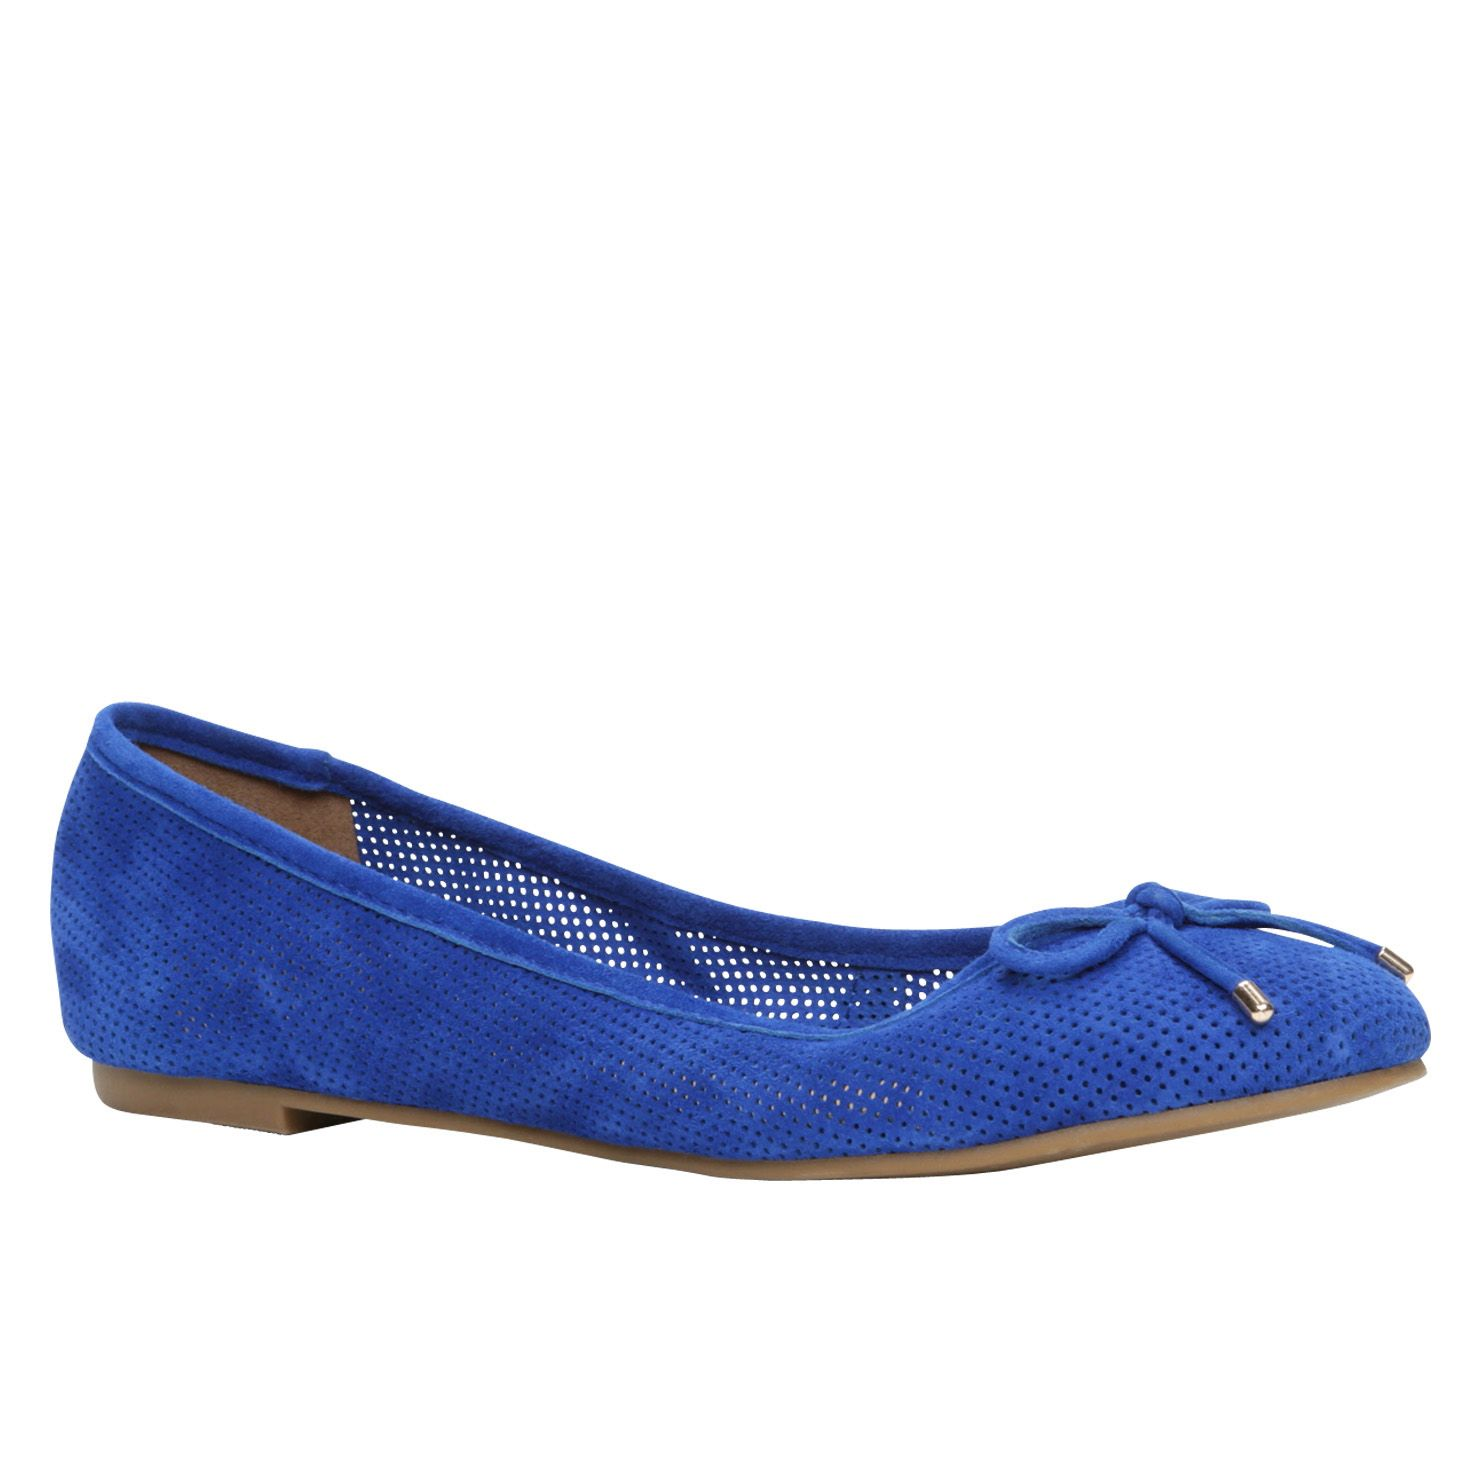 Gallodori ballerina pump shoes